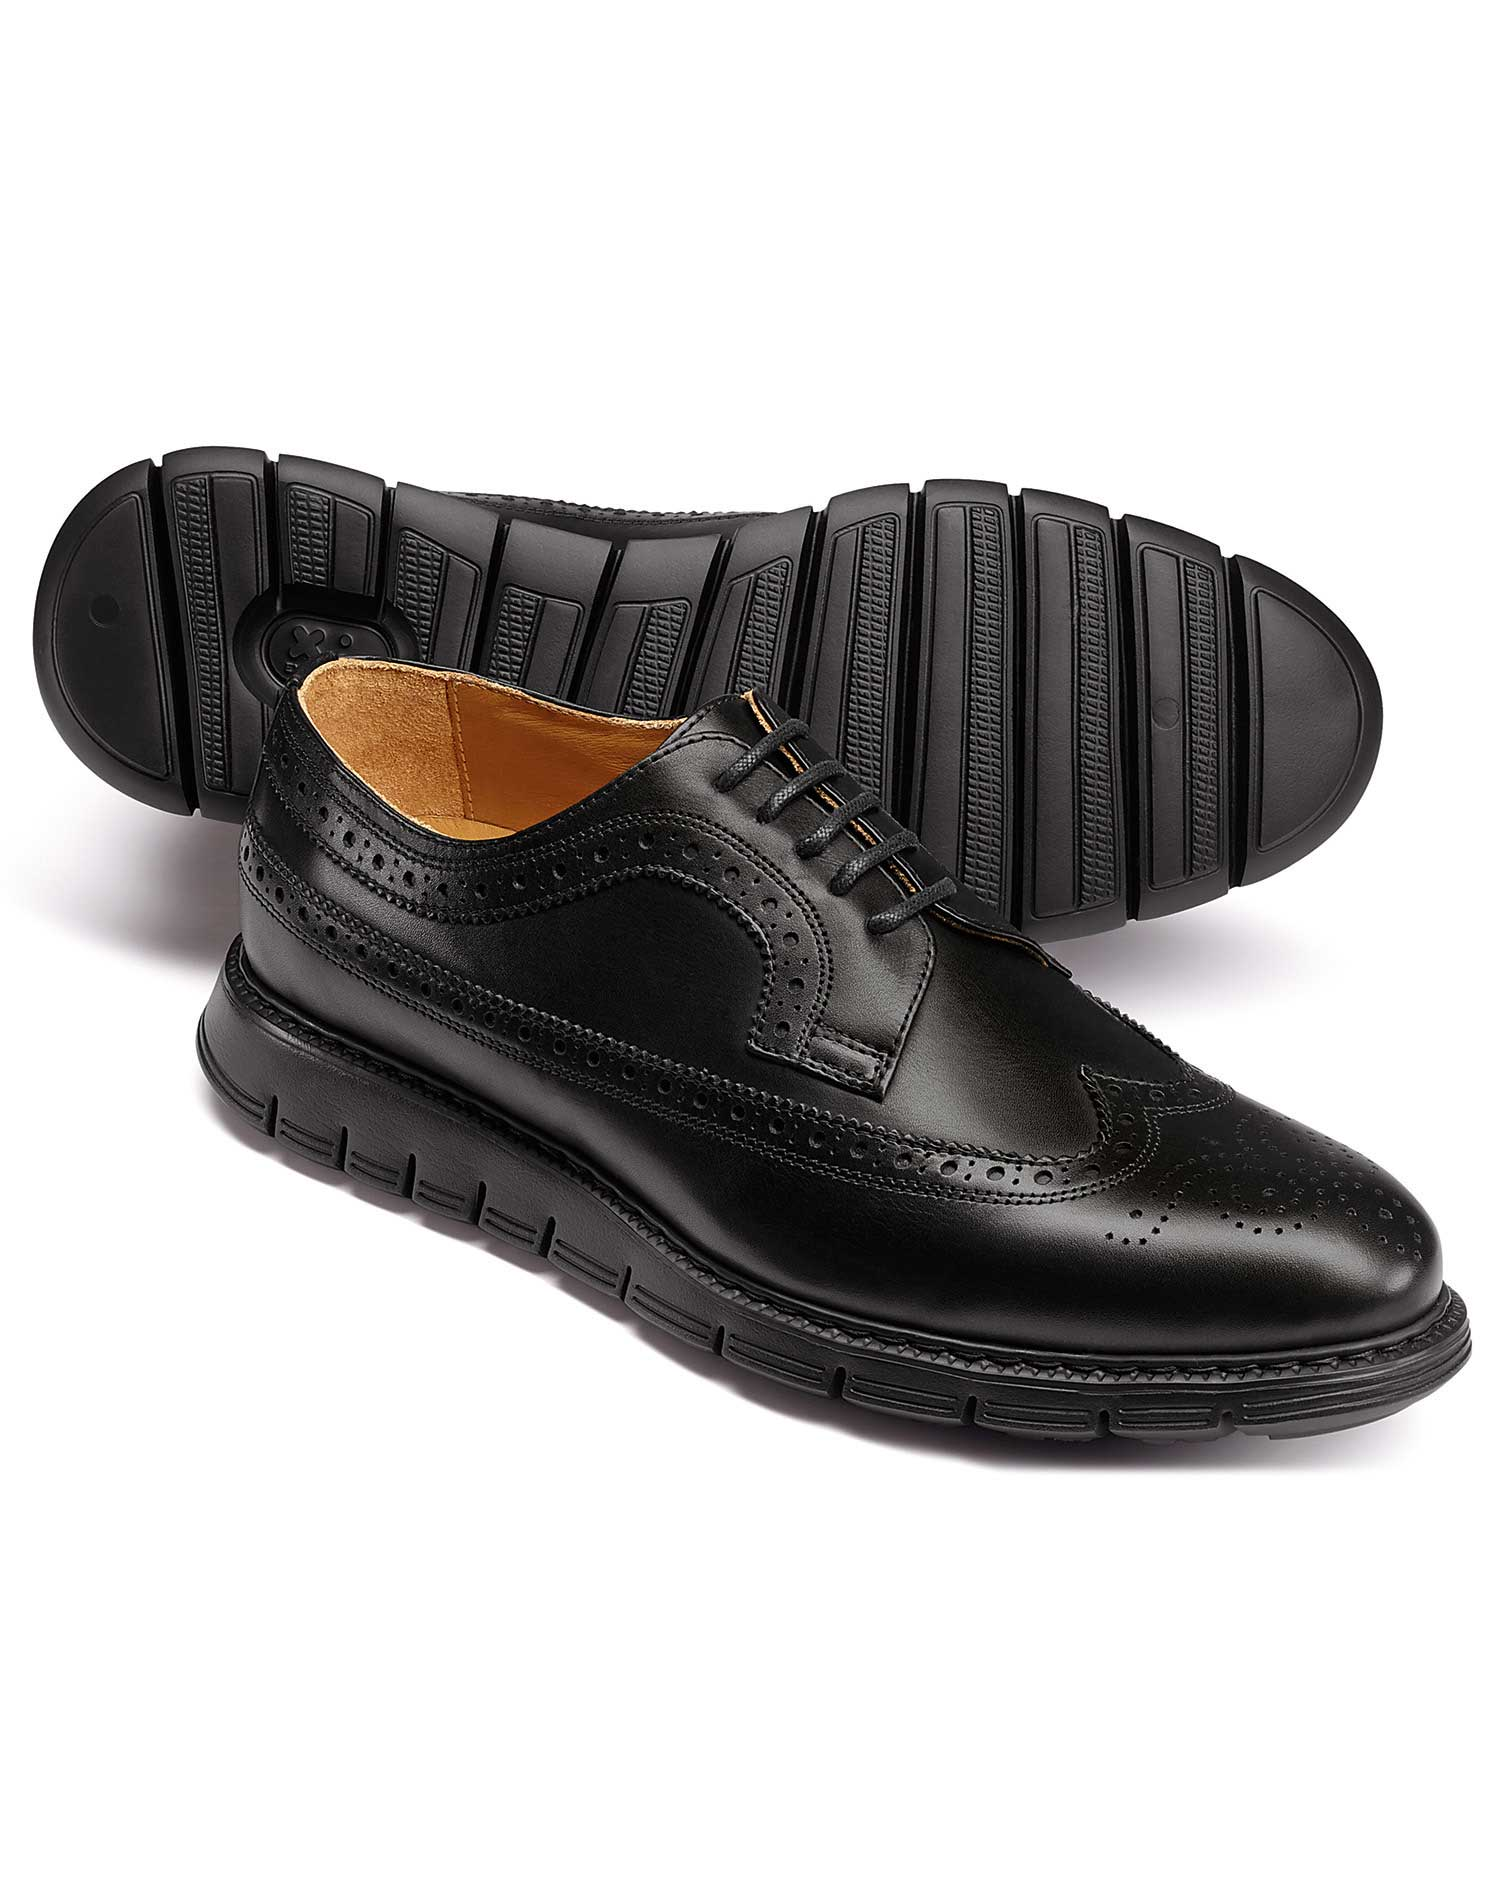 black extra lightweight derby brogue shoes size 12 by charles tyrwhitt